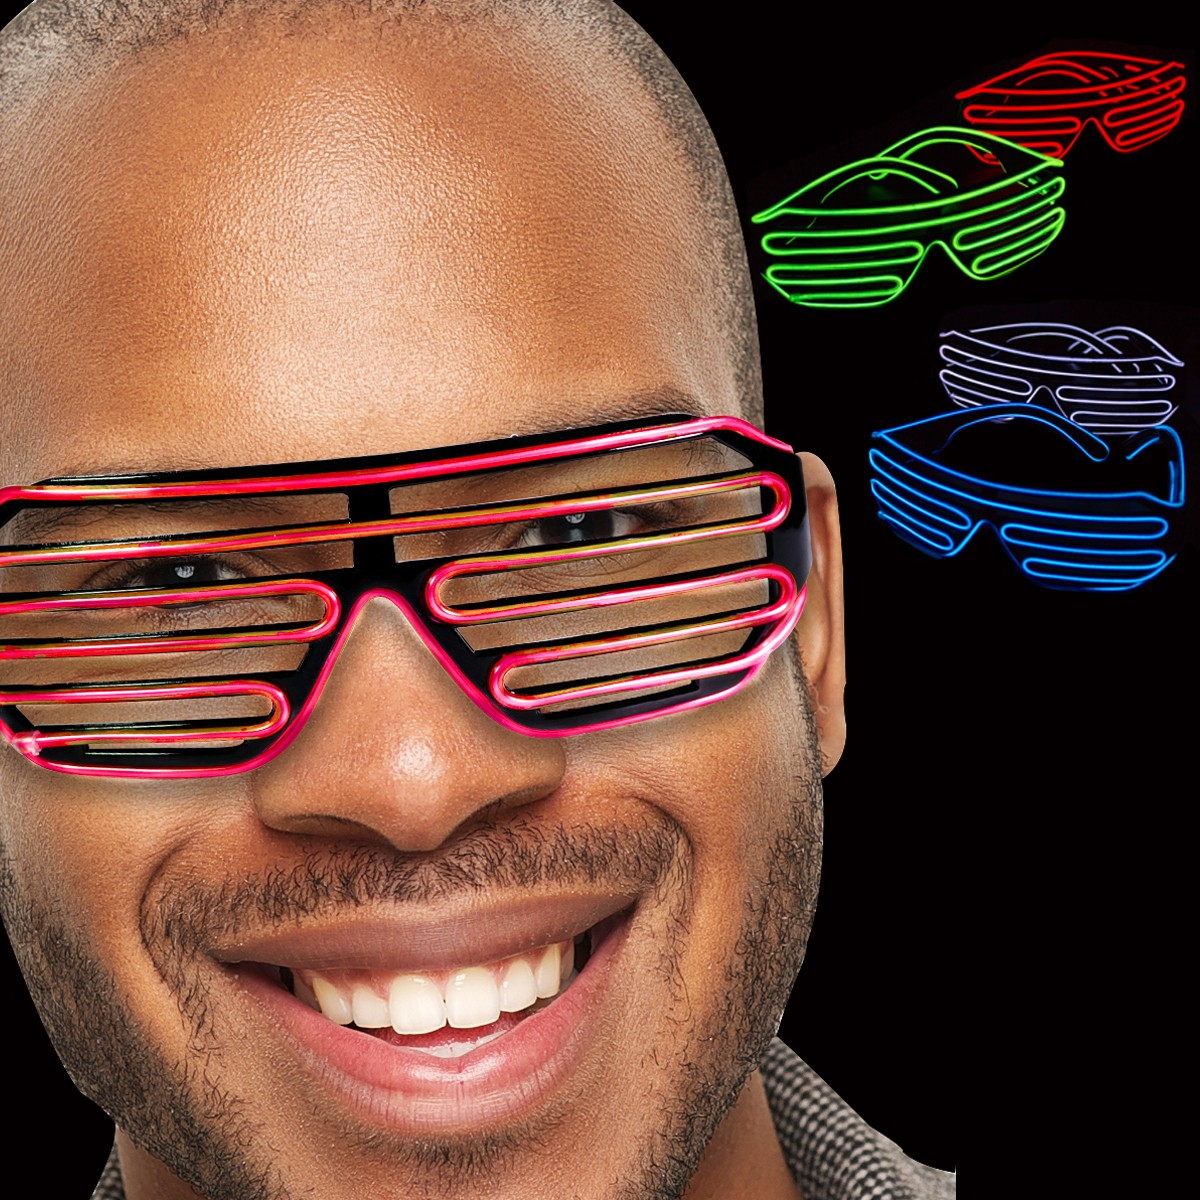 LED Slotted EL Sunglasses - Variety of Colors